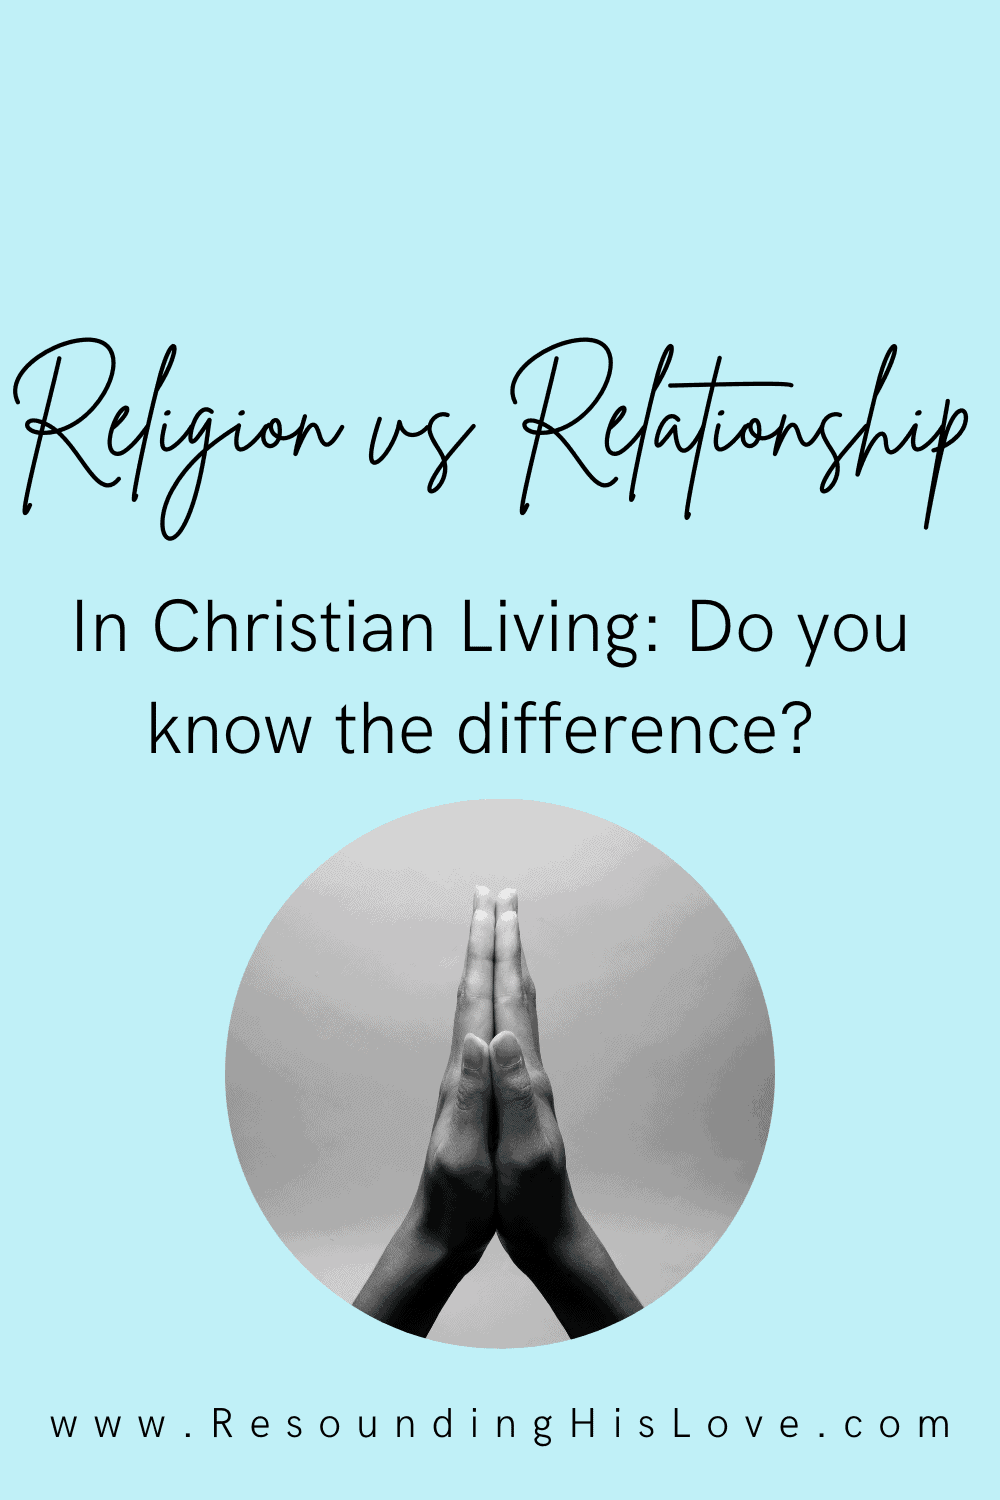 an image of hands in praying position with text Religion vs Relationship with Jesus Christ: Do You Know the Difference?